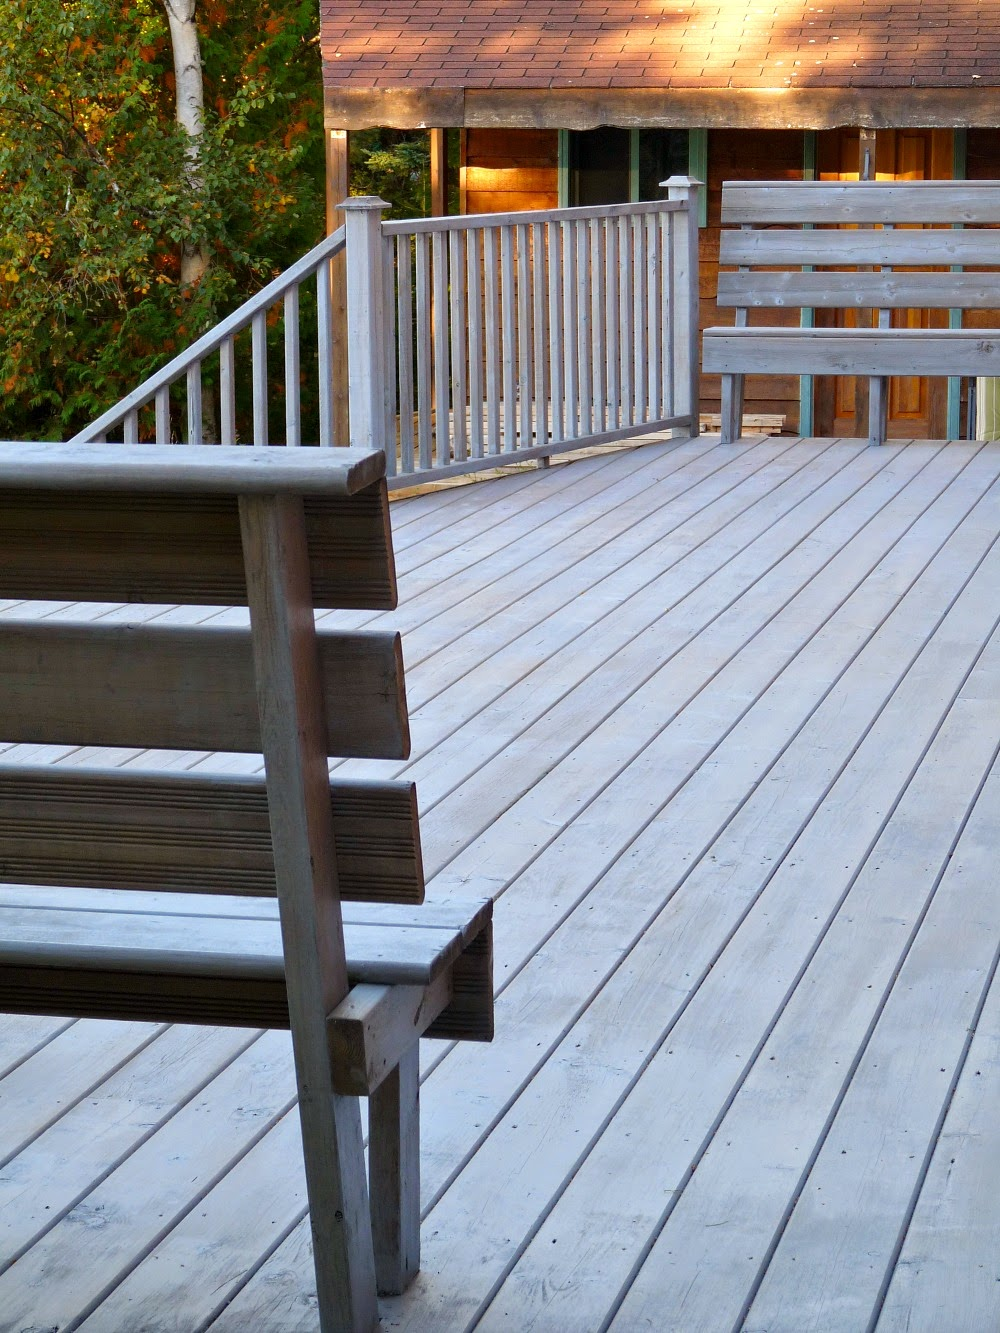 Deck Makeover Part Ii Staining Pressure Treated Wood Dans Le Lakehouse